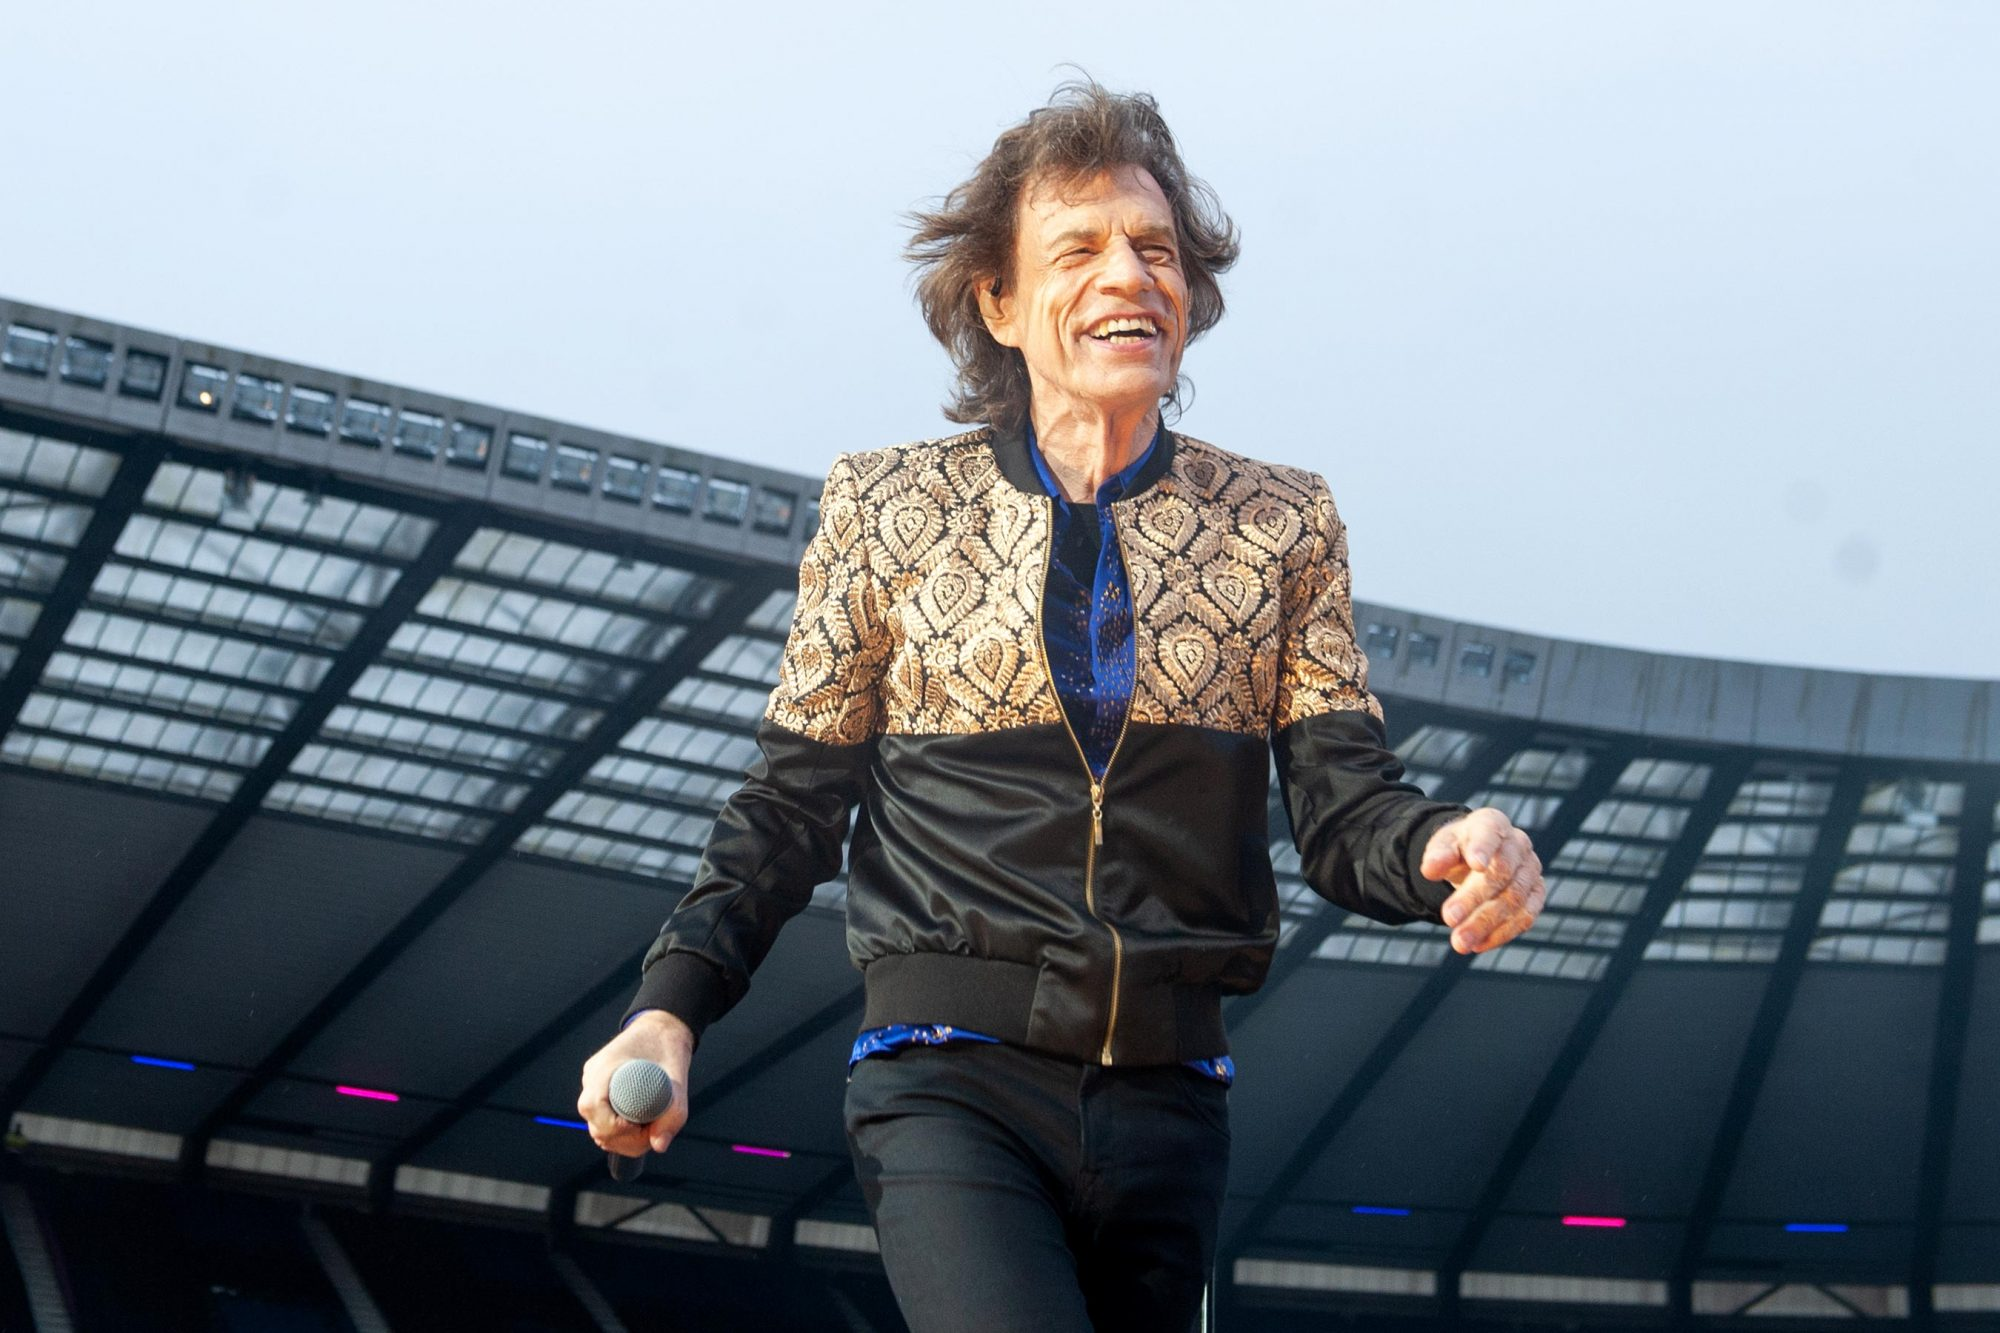 The Rolling Stones Perform At The BT Murrayfield Stadium